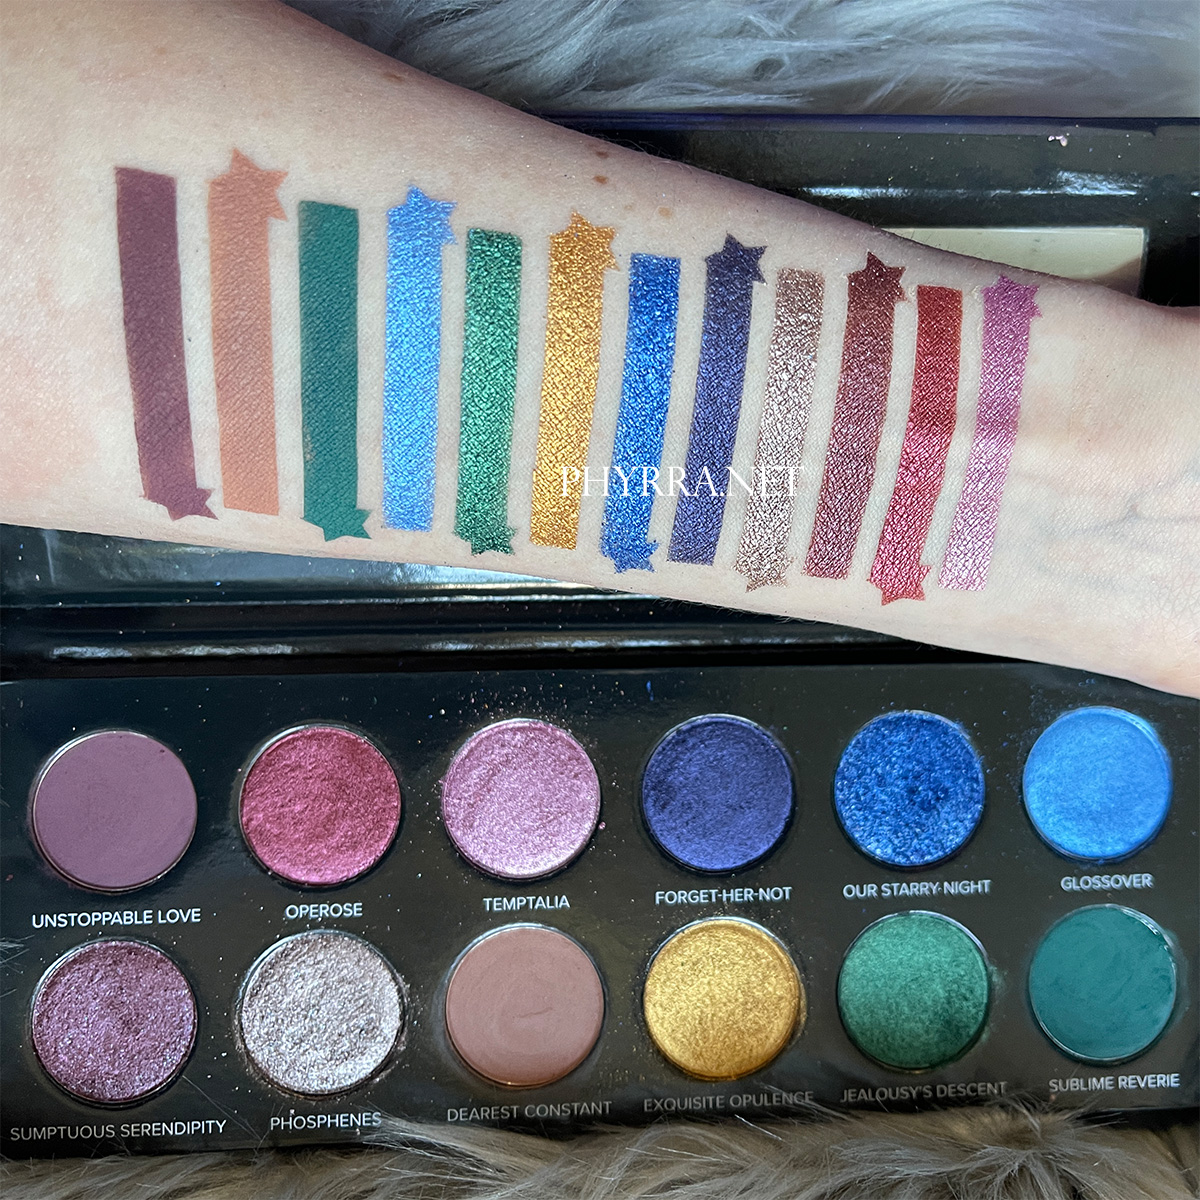 Sydney Grace Radiant Reflection Palette Swatches on Fair Skin